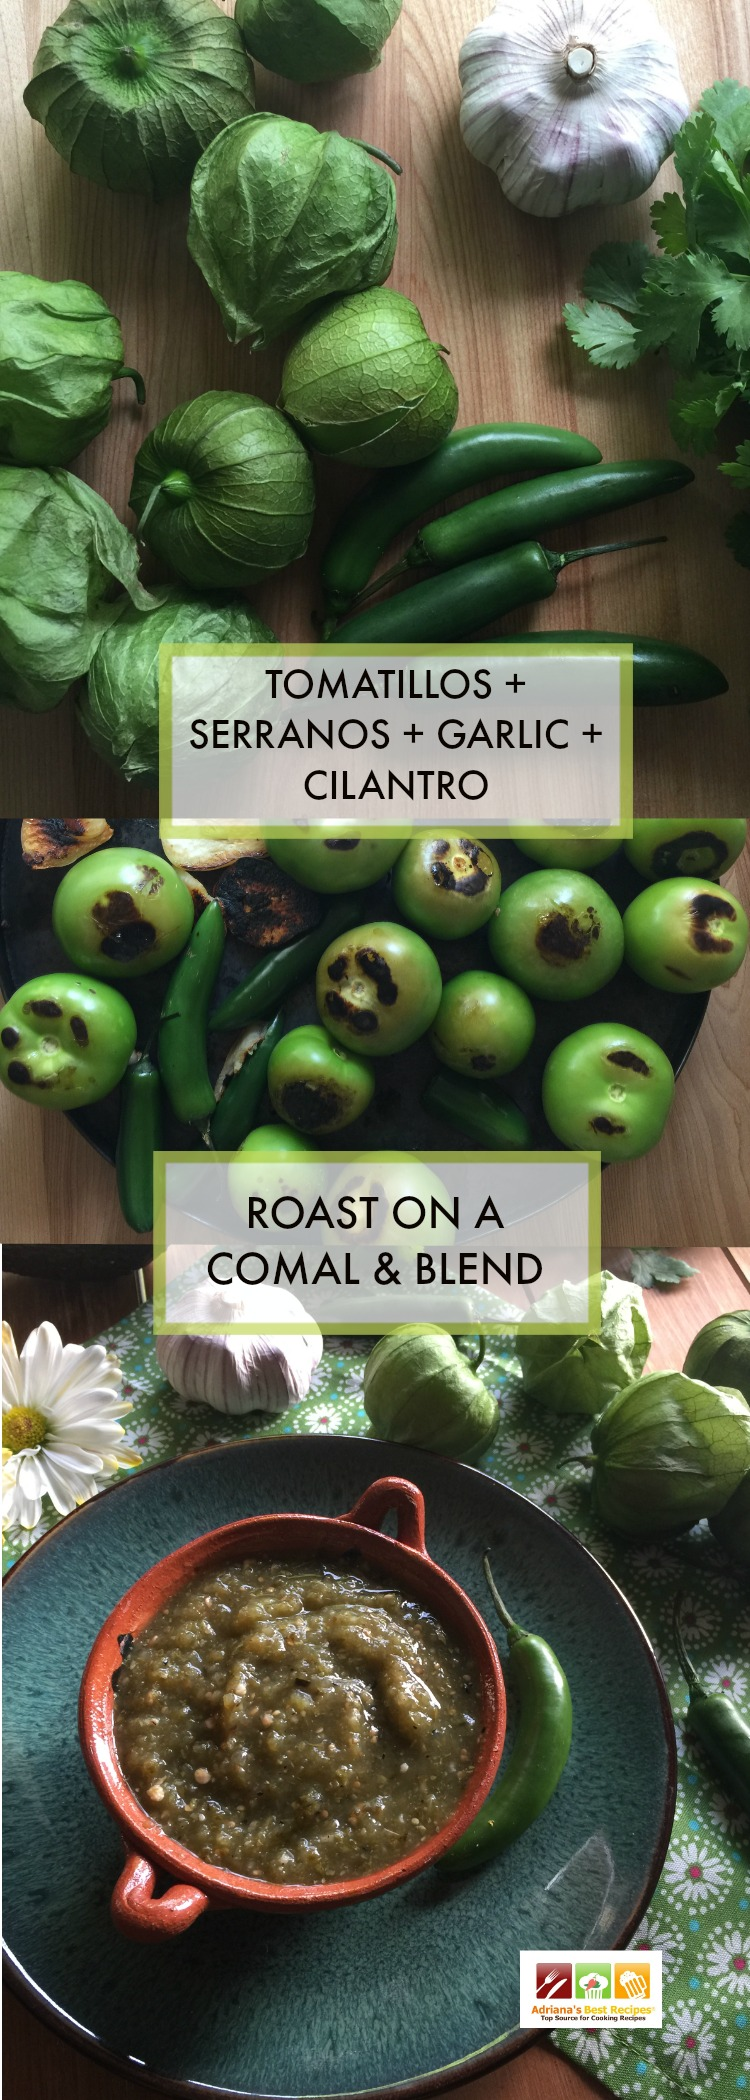 The roasted tomatillo salsa verde is a staple of my Mexican cuisine. Made with green tomatillos, serranos, garlic, and cilantro.